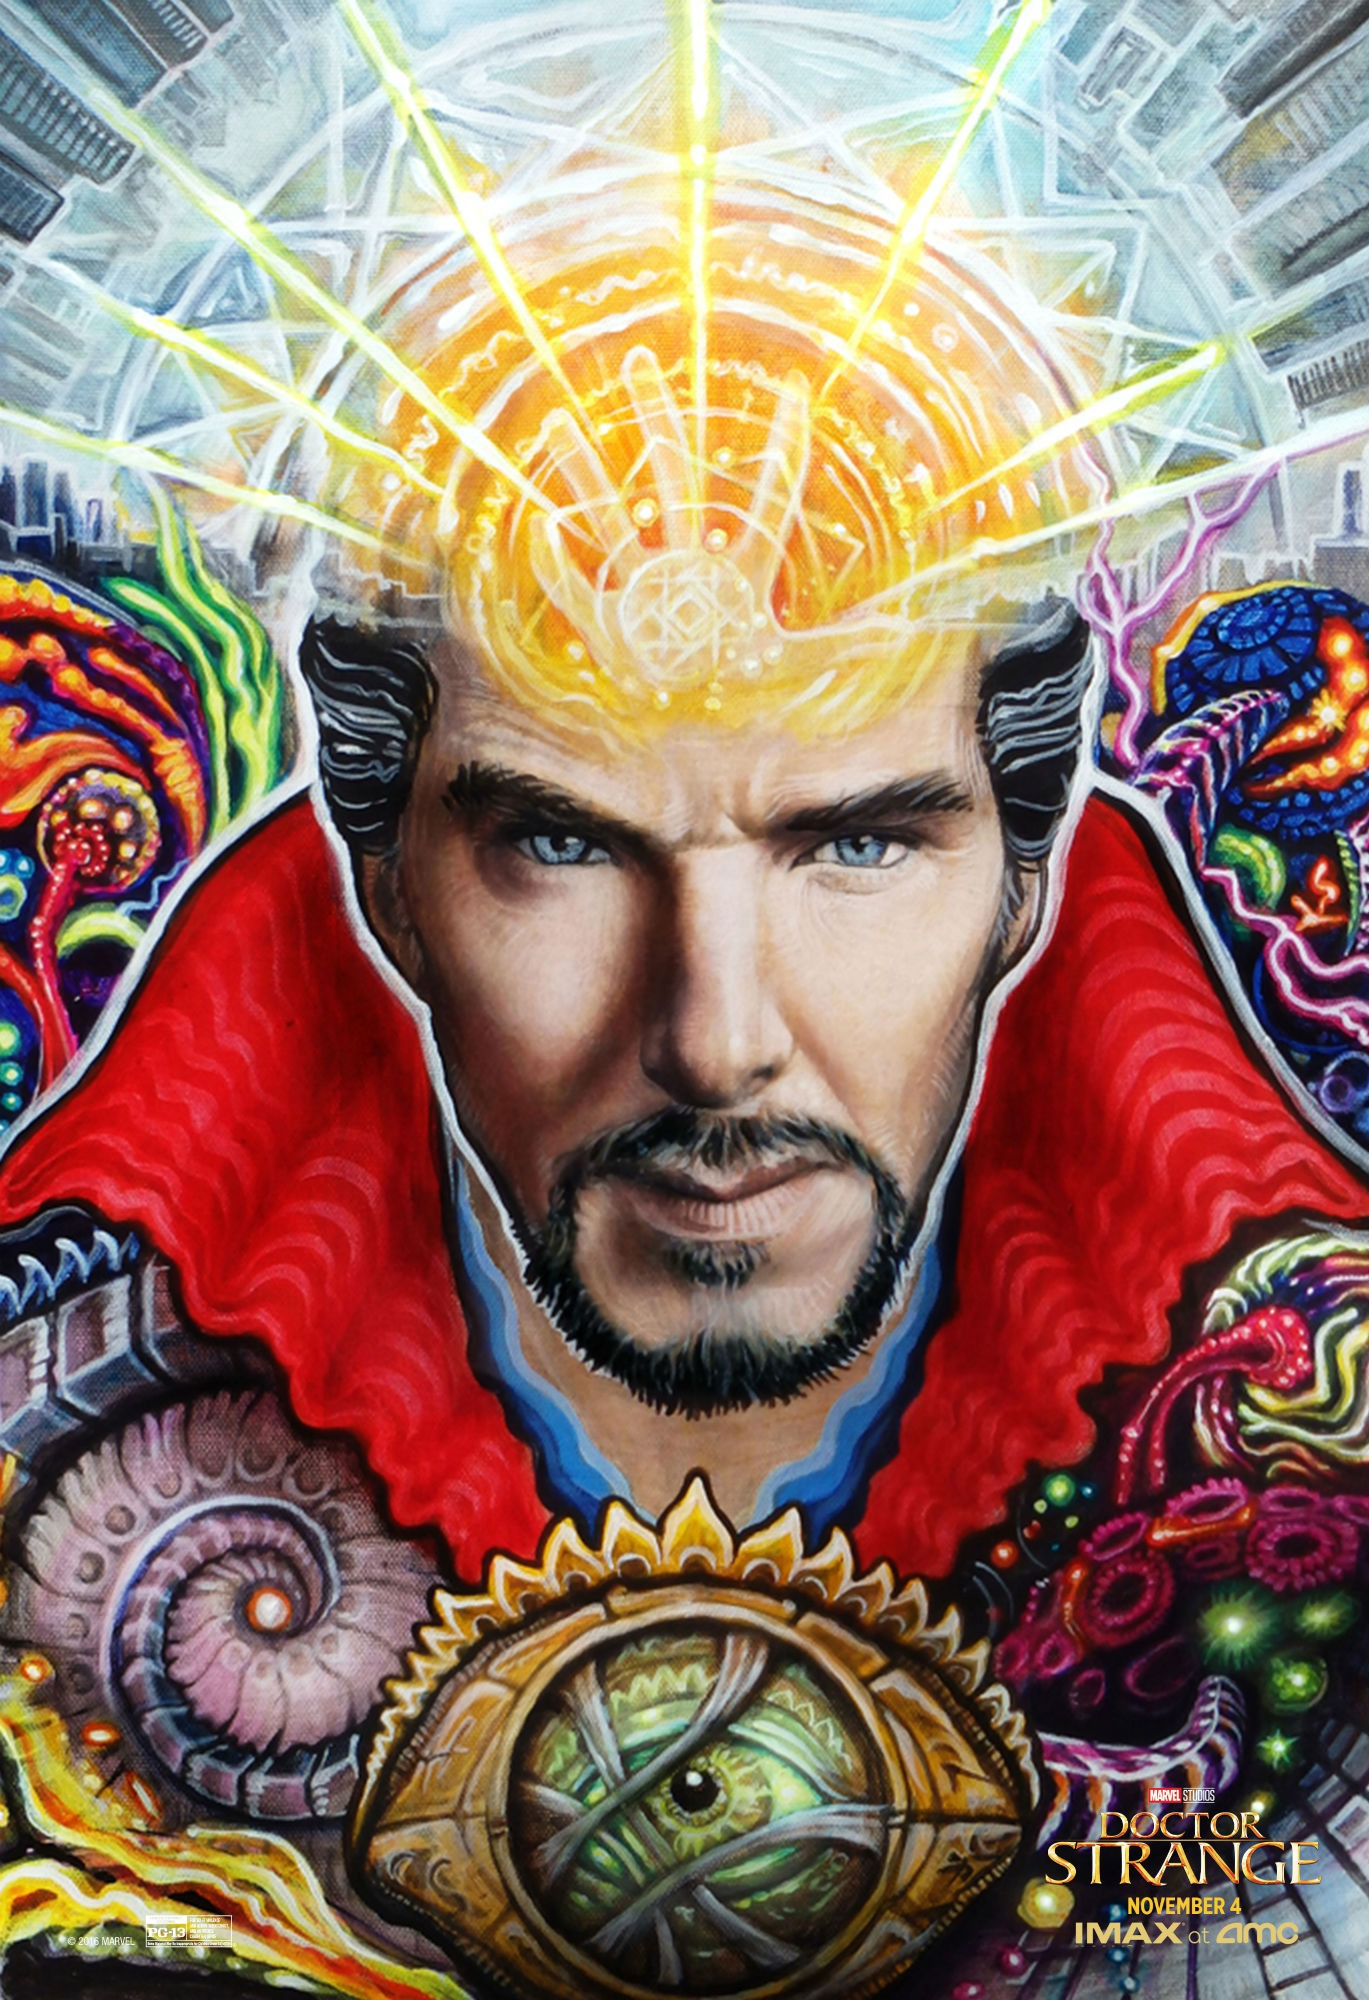 Doctor Strange new IMAX posters get psychedelic | SciFiNow - The World's Best Science Fiction ...